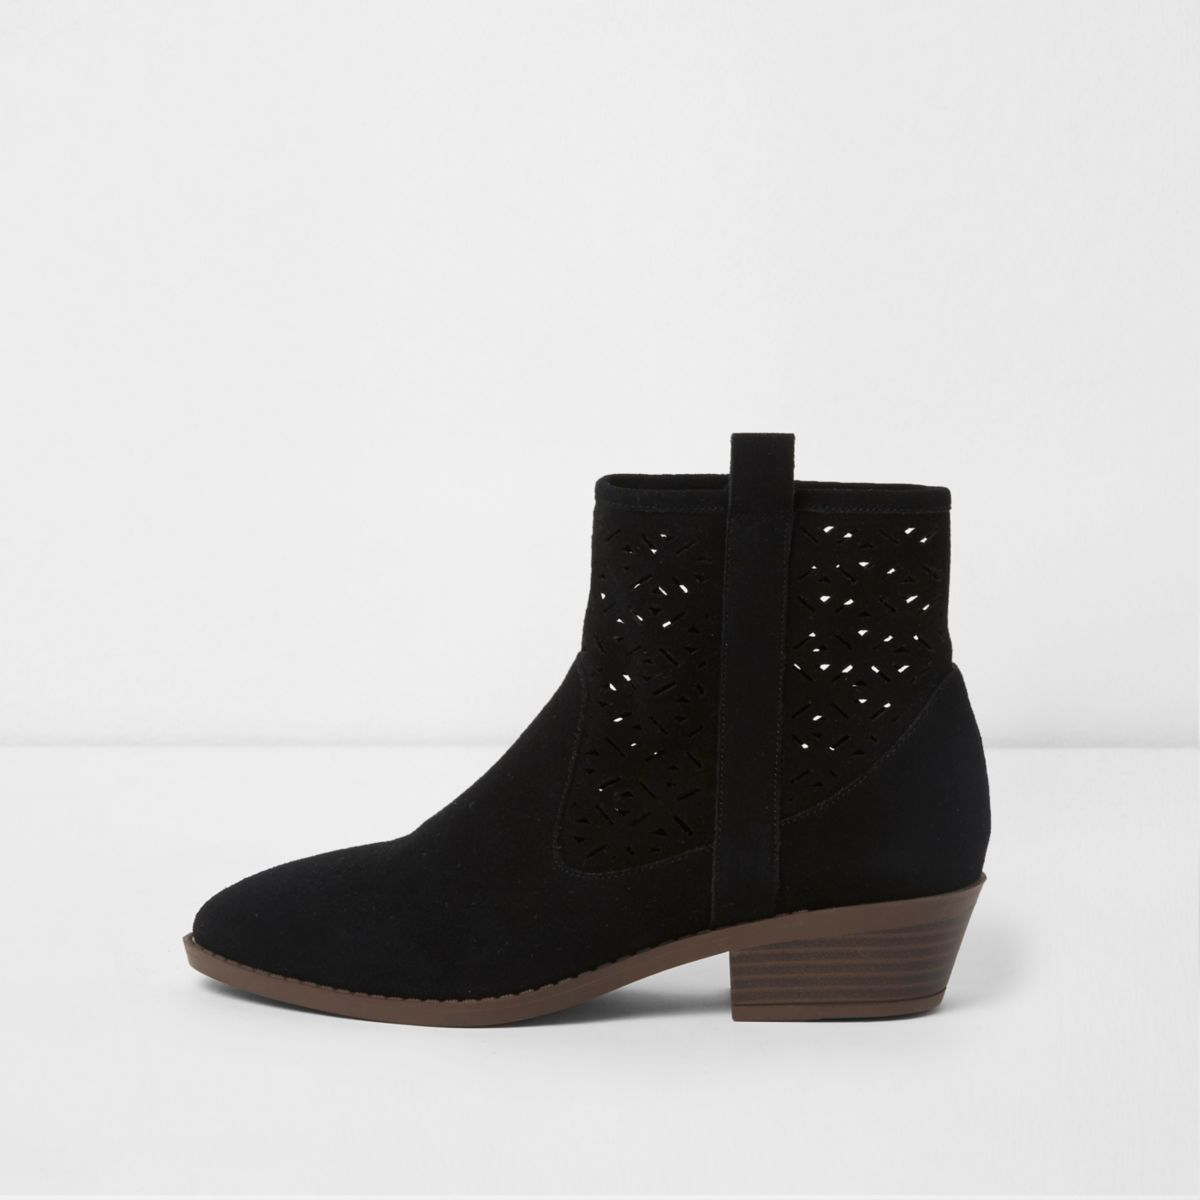 Black laser cut suede western ankle boots